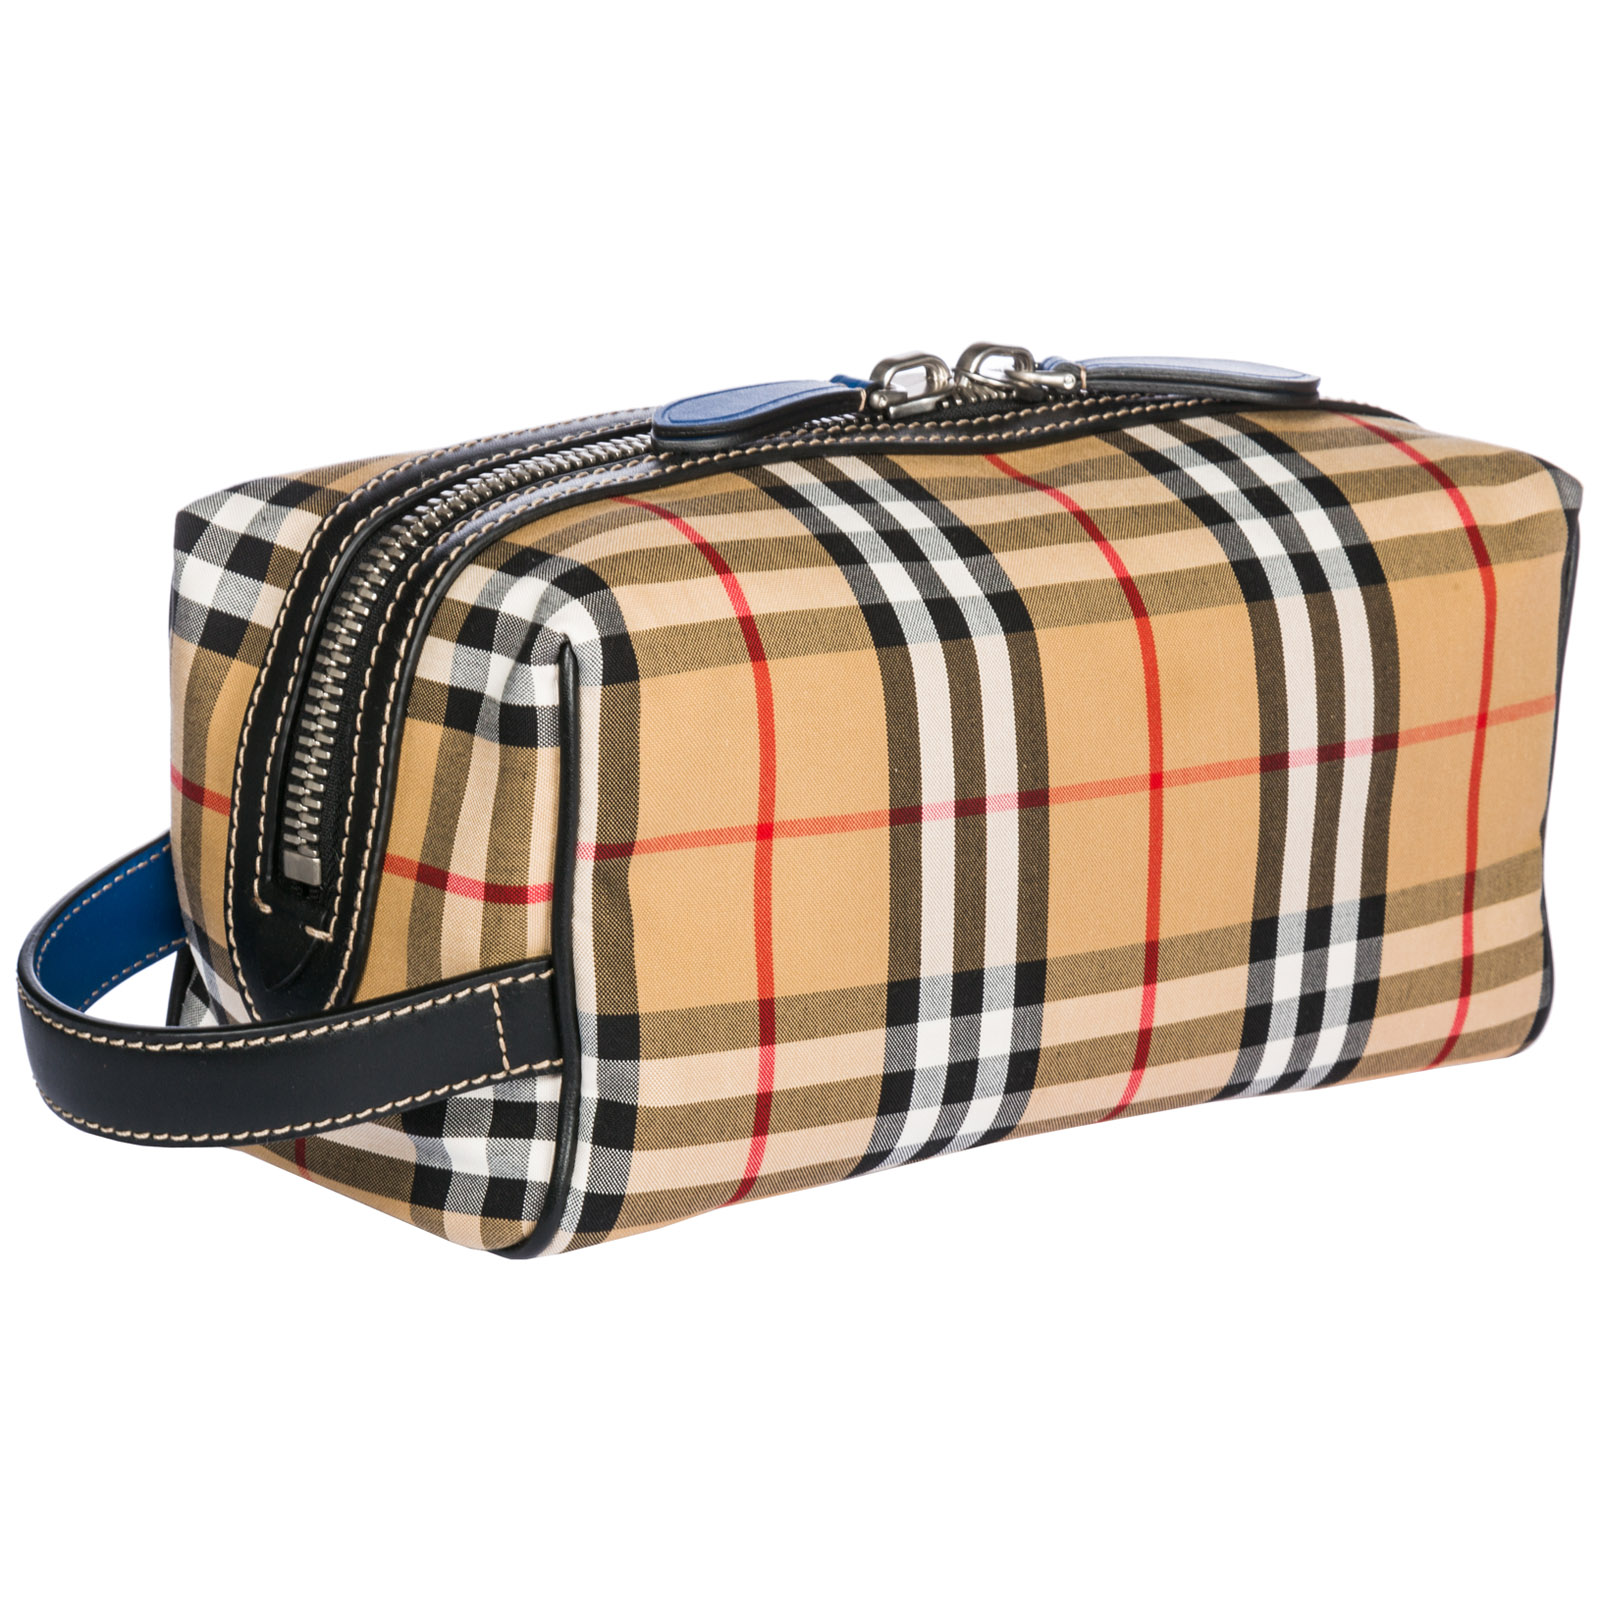 7d4da0f9059f ... Men s travel toiletries beauty case wash bag ...